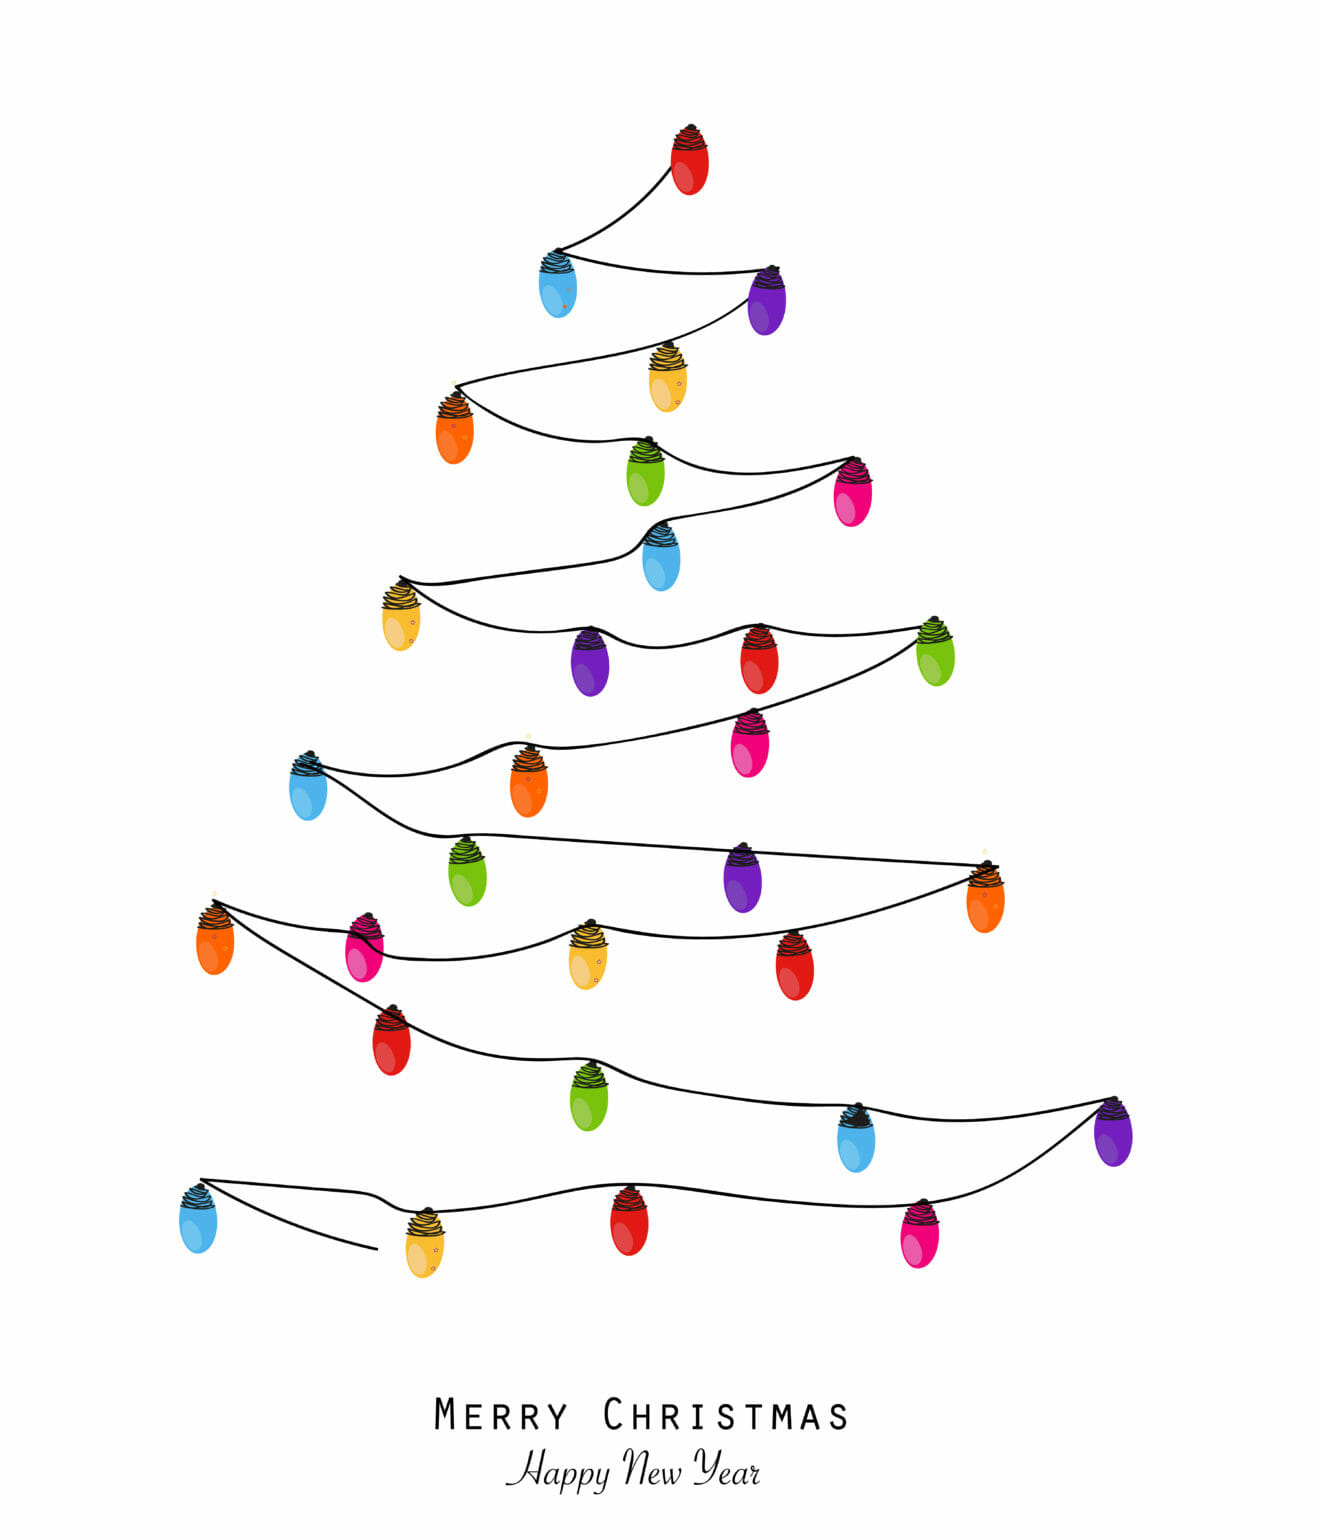 Tree with Christmas light bulb. Merry christmas and happy new year greeting card